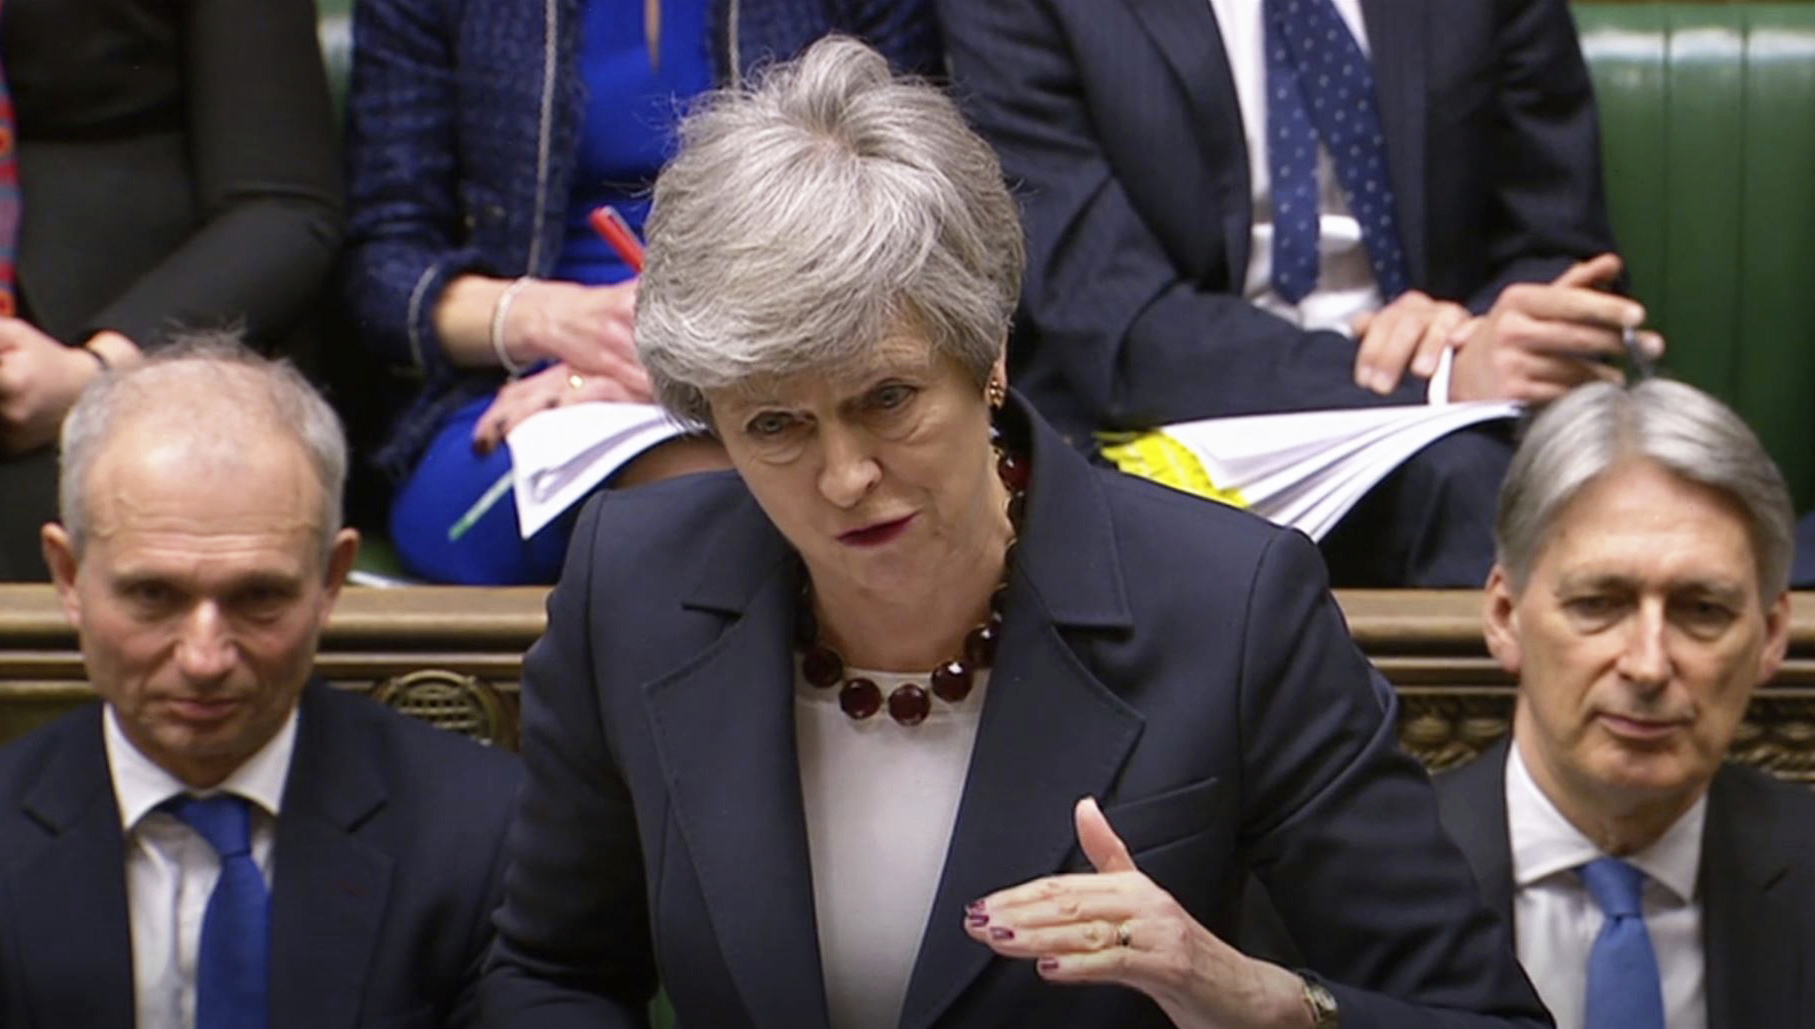 PM May to step down if Brexit deal is passed